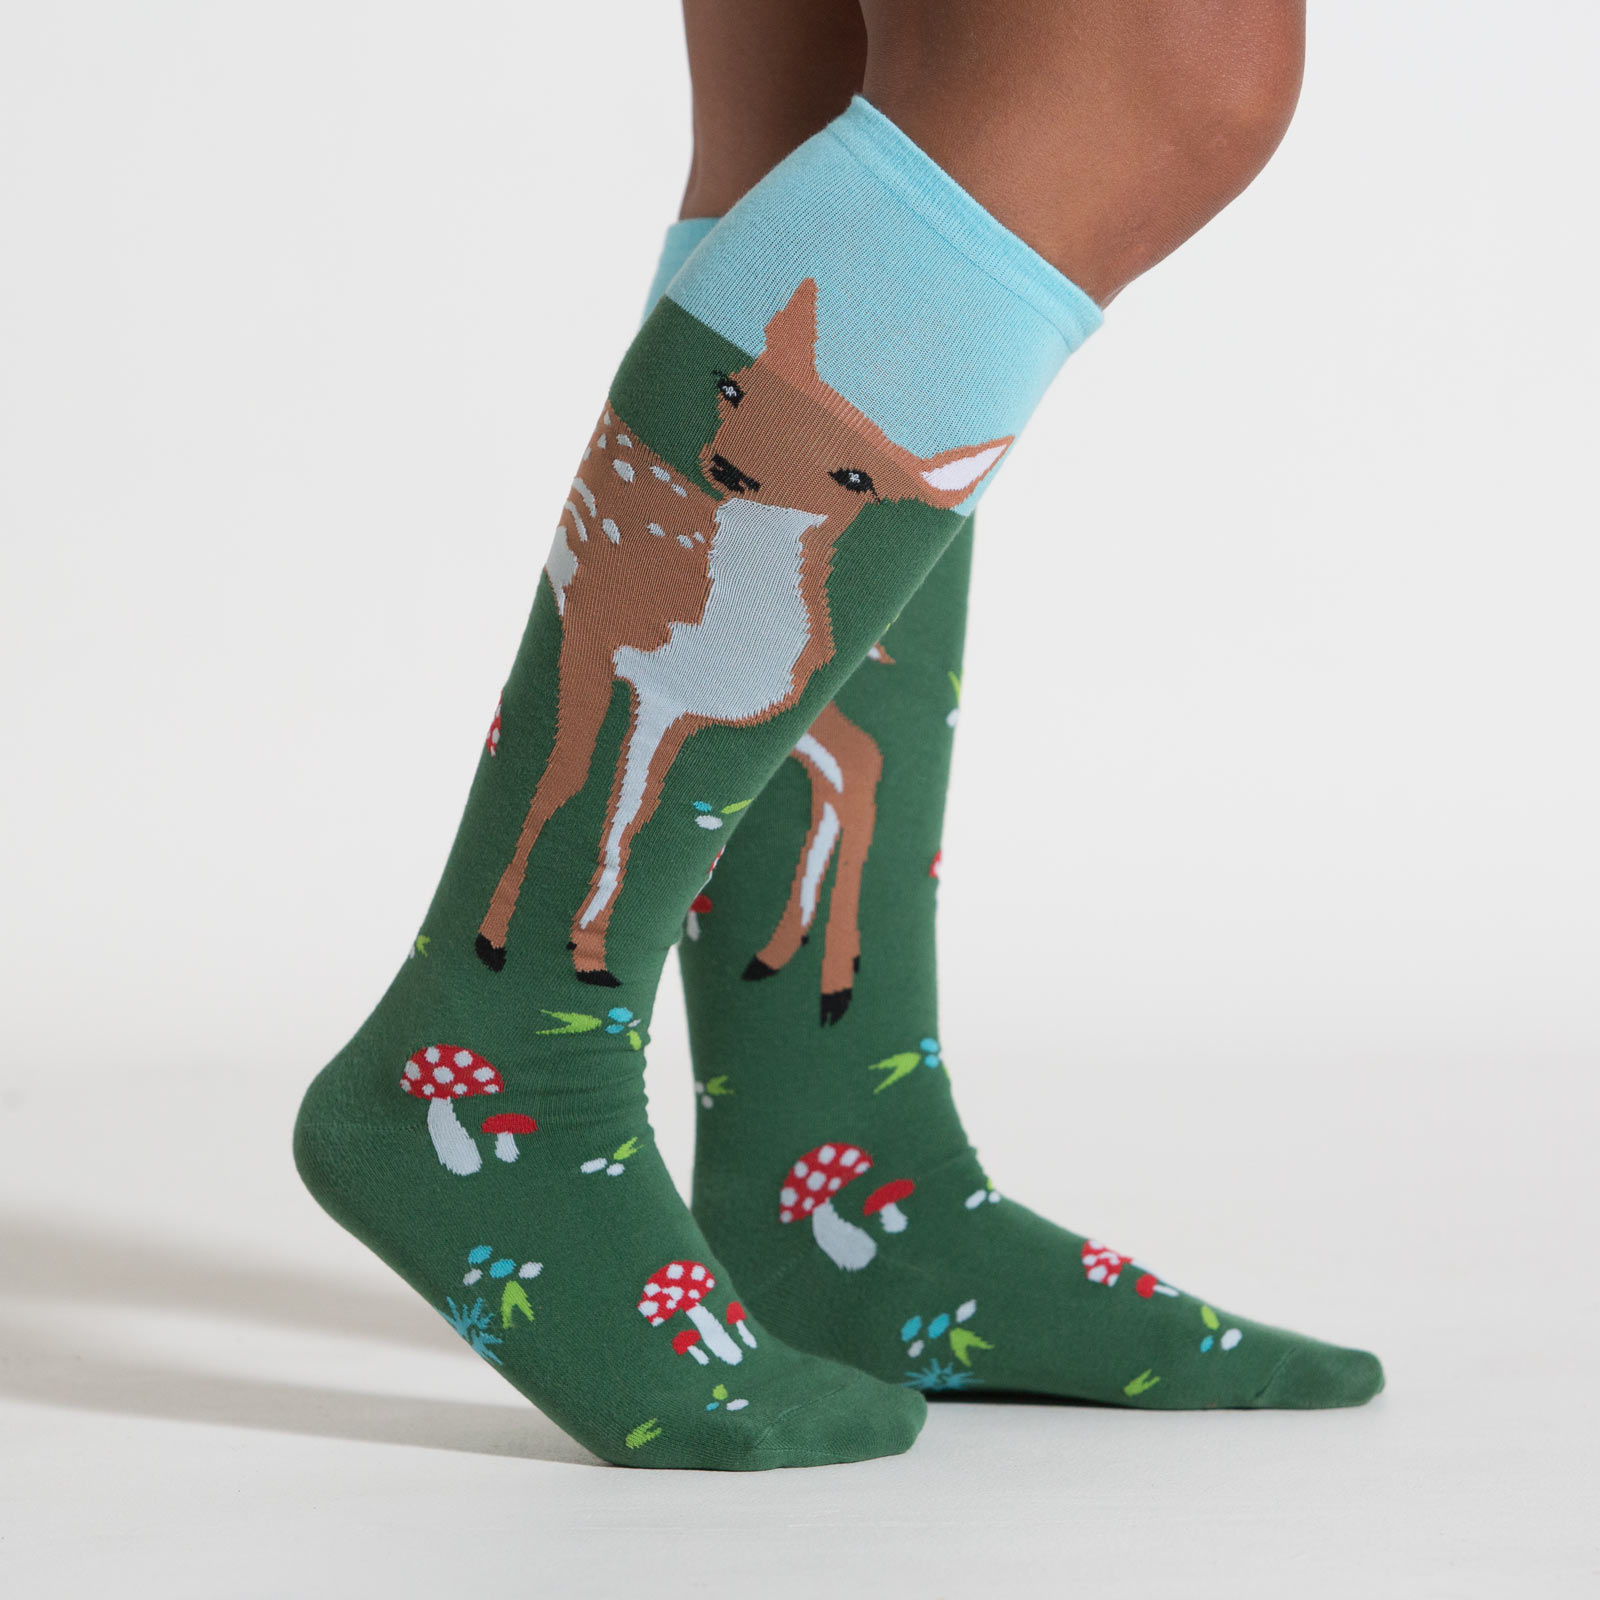 Women's Knee High Socks with Fawn